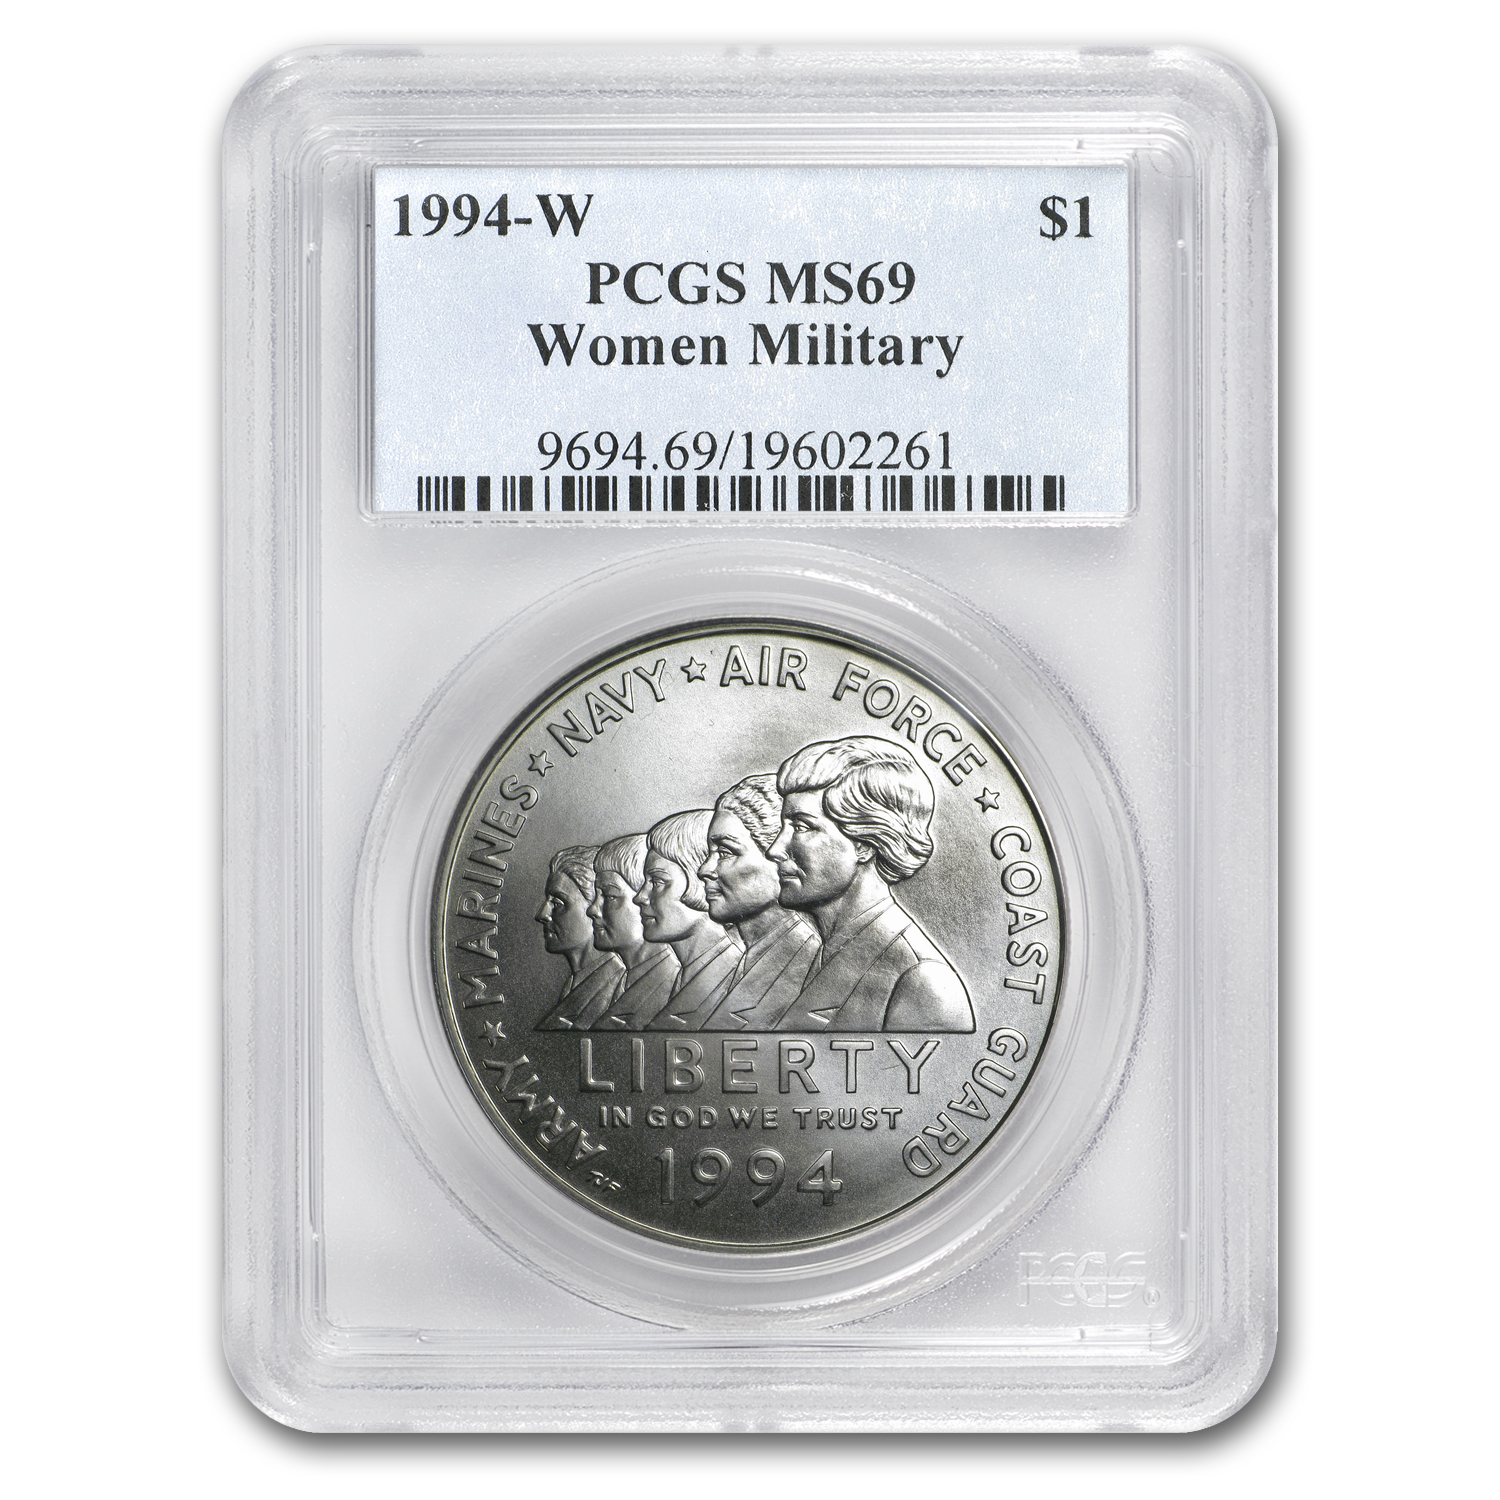 1994-W Women in Military $1 Silver Commemorative MS-69 PCGS